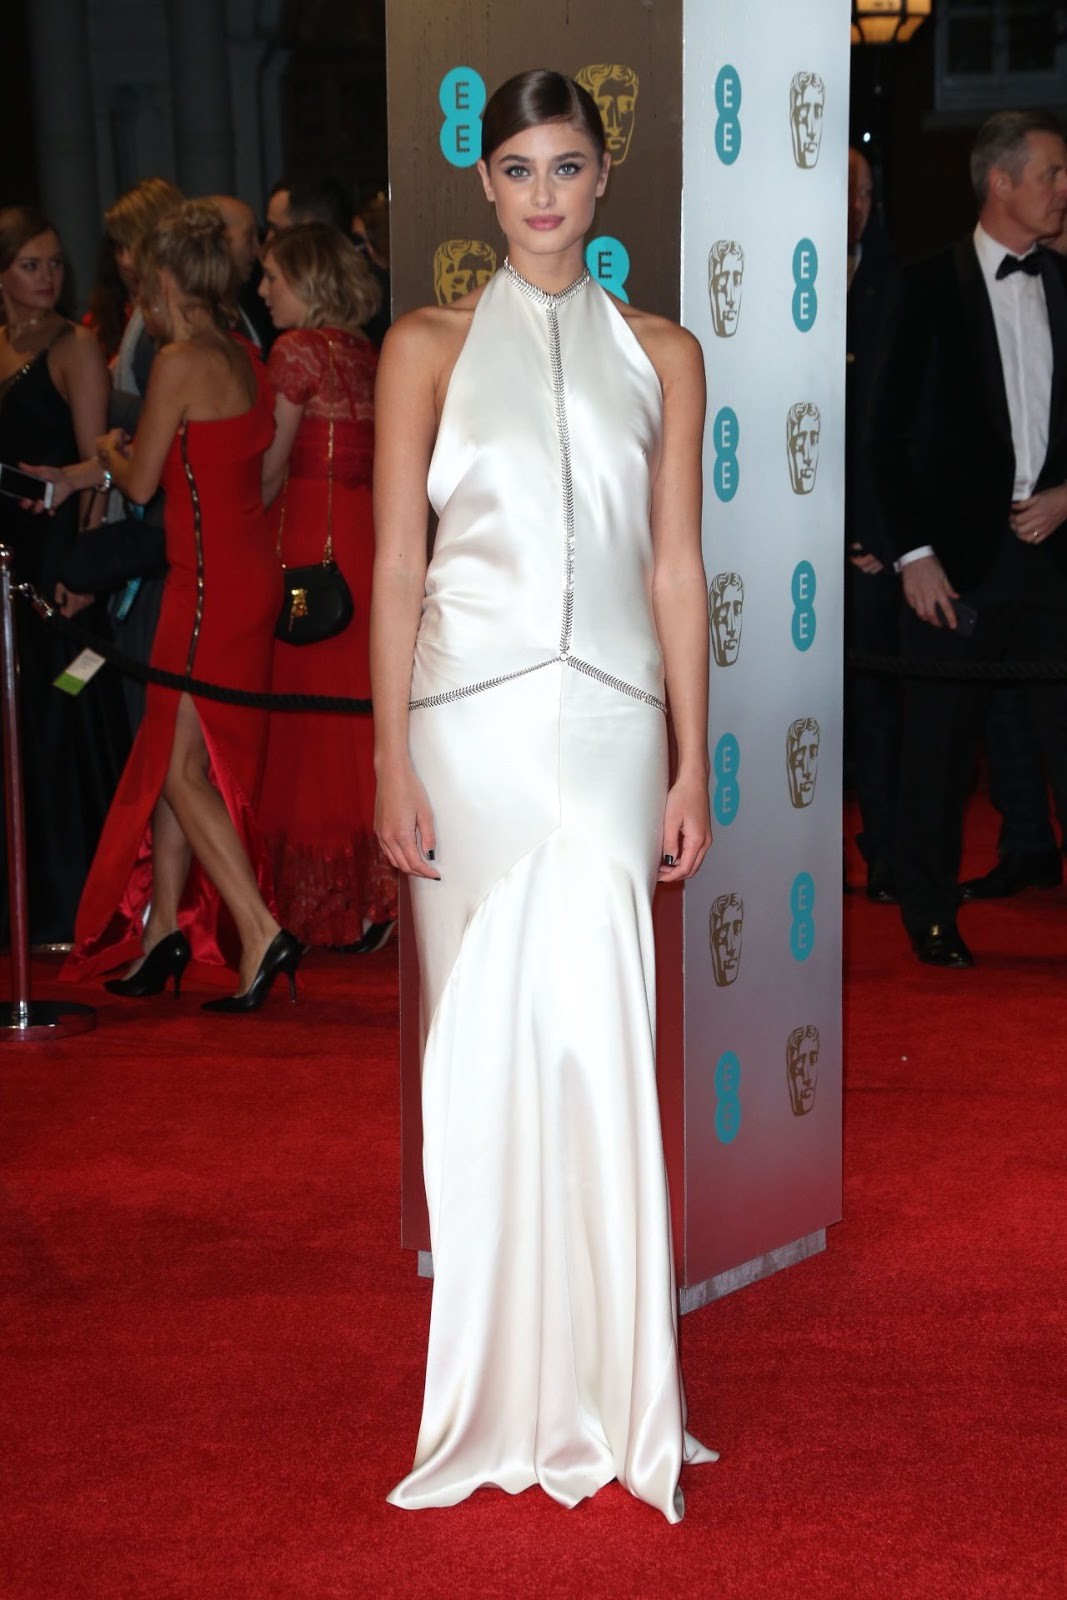 Taylor Hill on Red Carpet at BAFTA Awards in London, UK